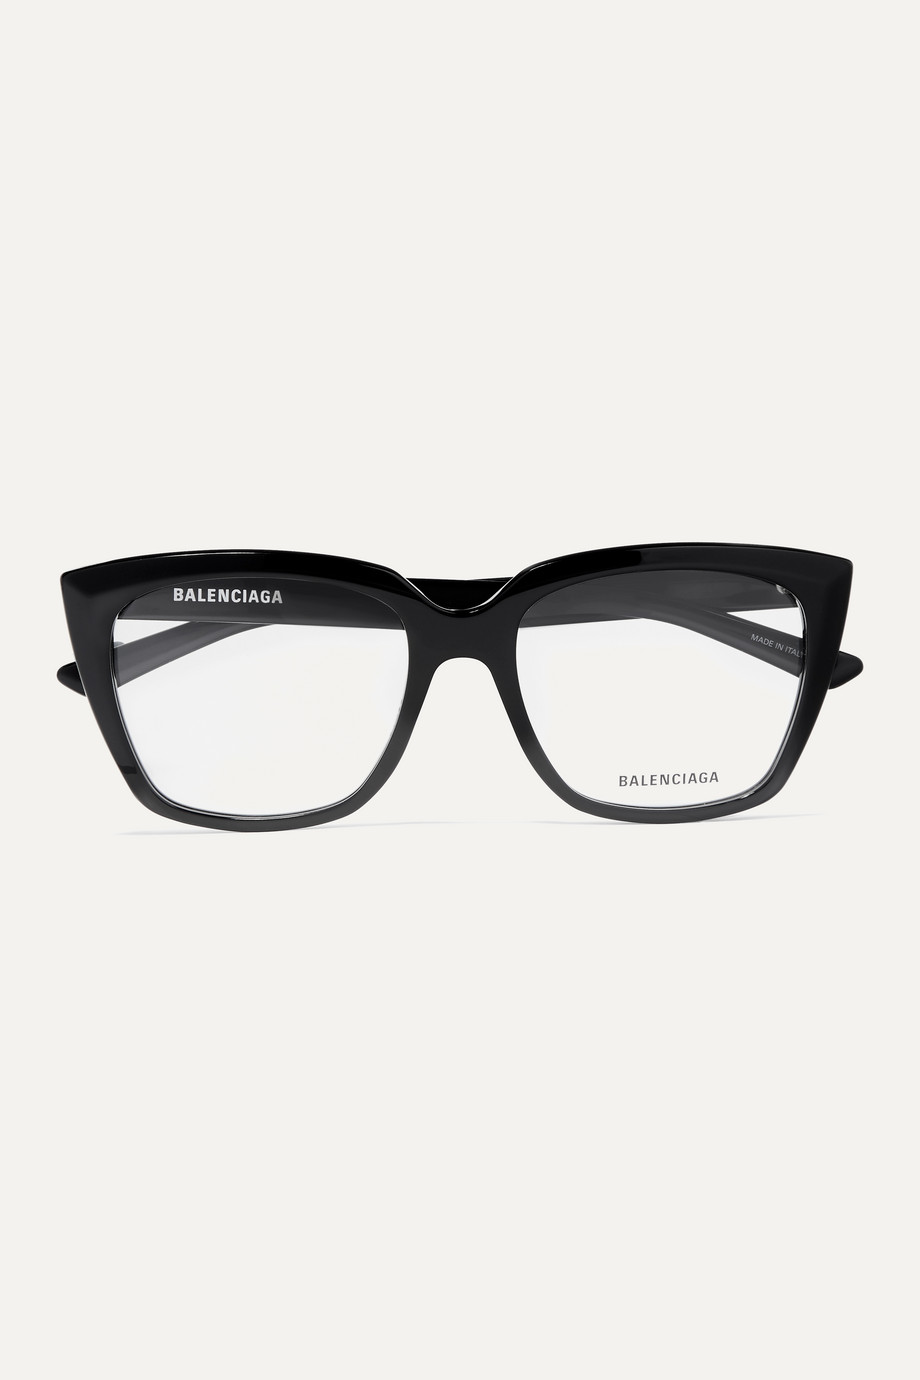 Balenciaga Tip oversized cat-eye acetate optical glasses